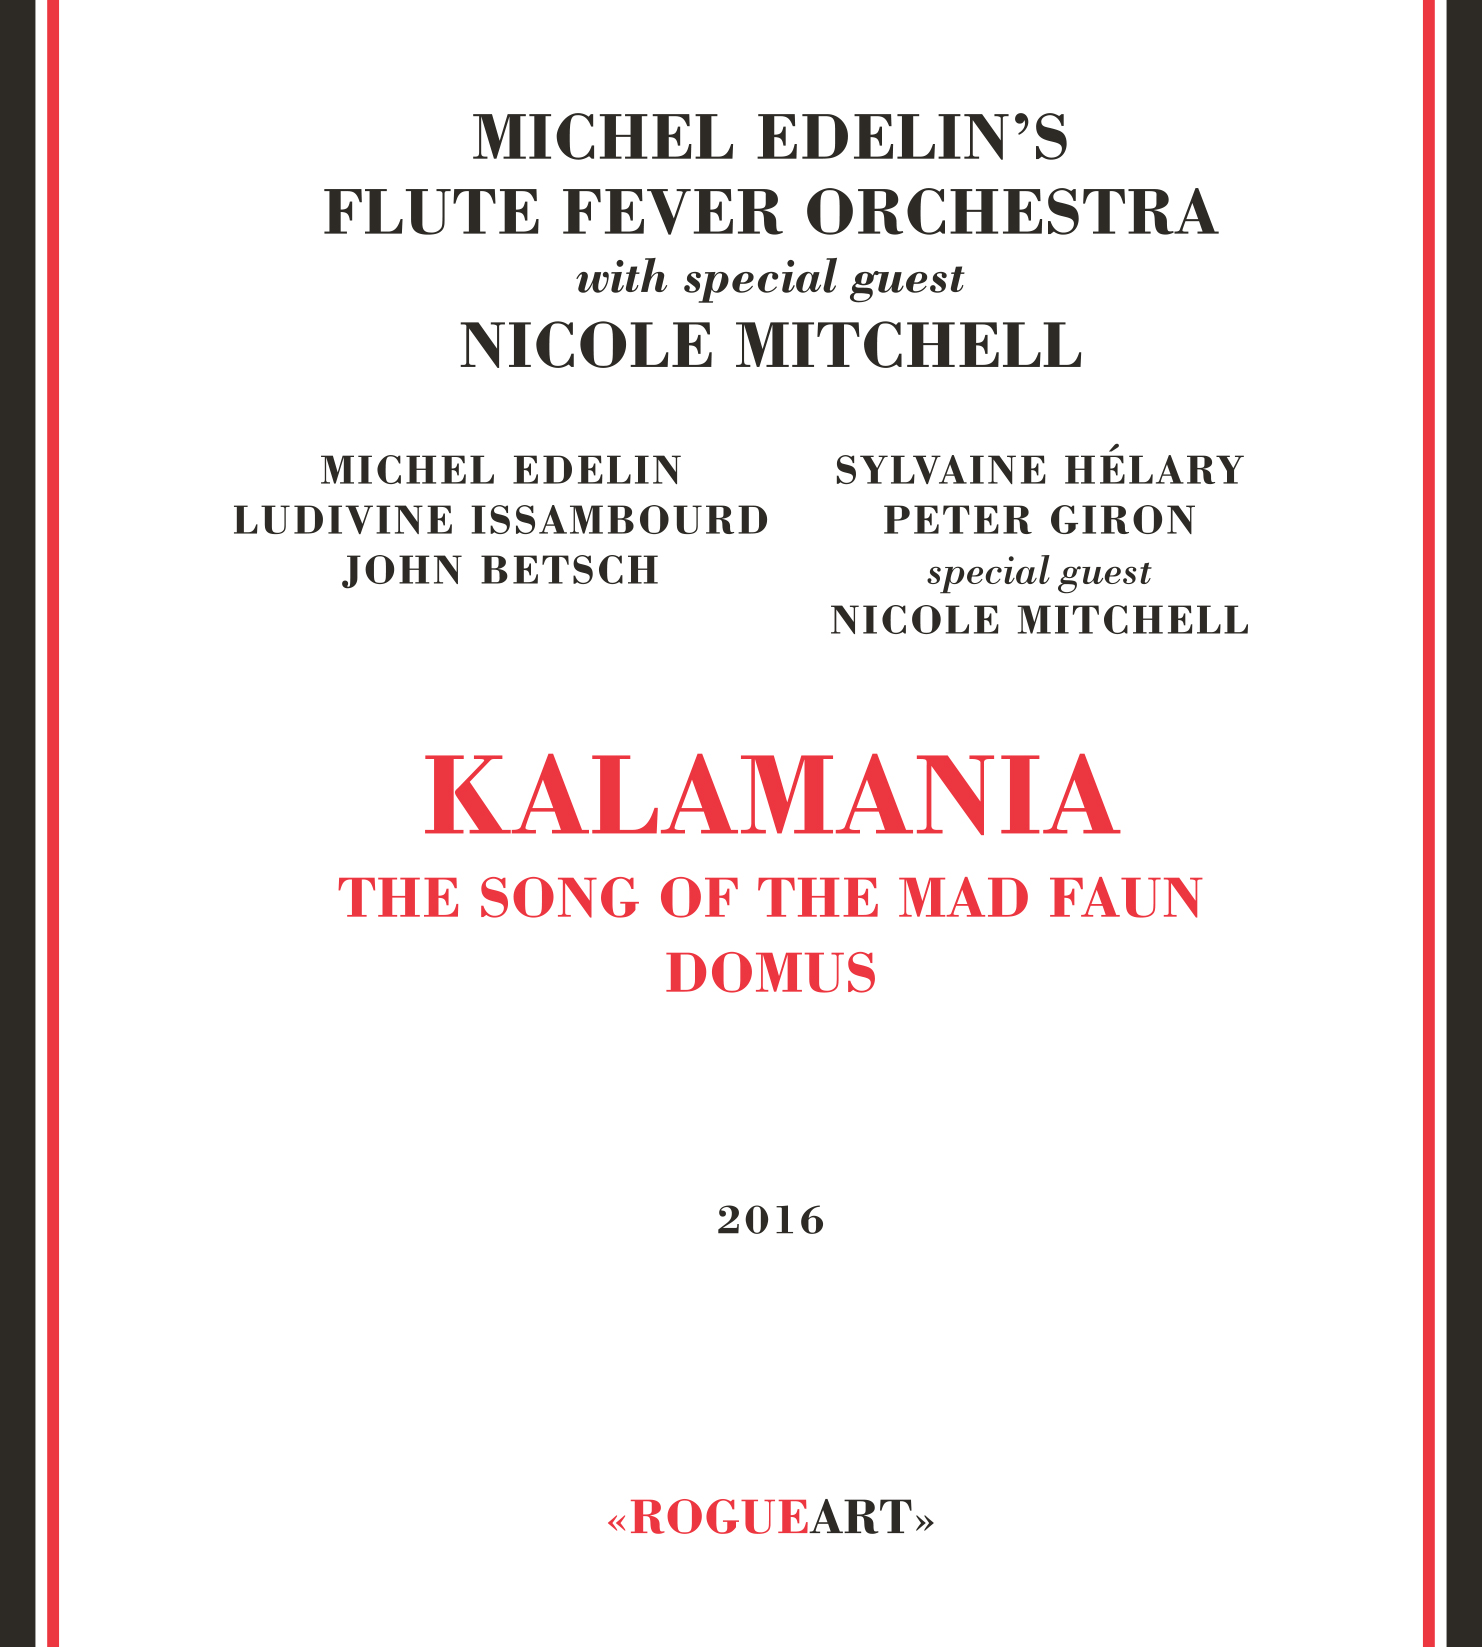 Front cover of the album KALAMANIA